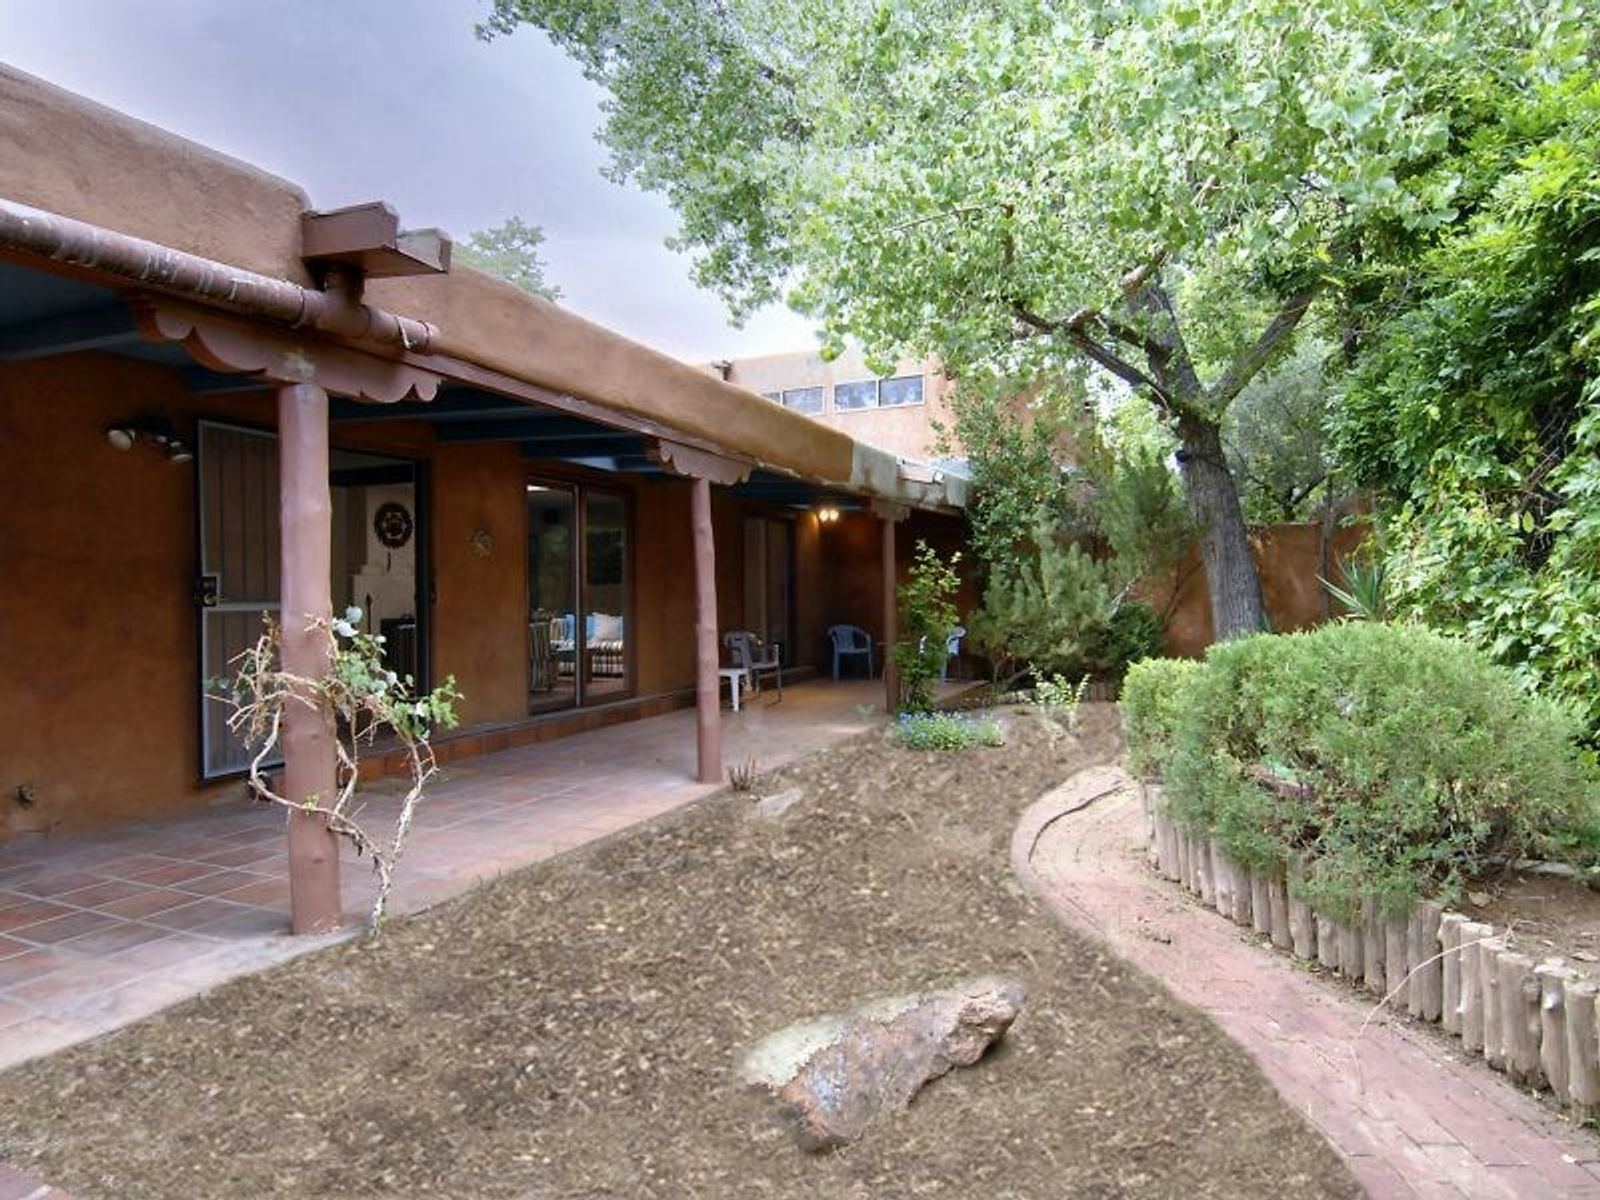 627 Webber Street, Santa Fe NM Condominium - Santa Fe Real Estate